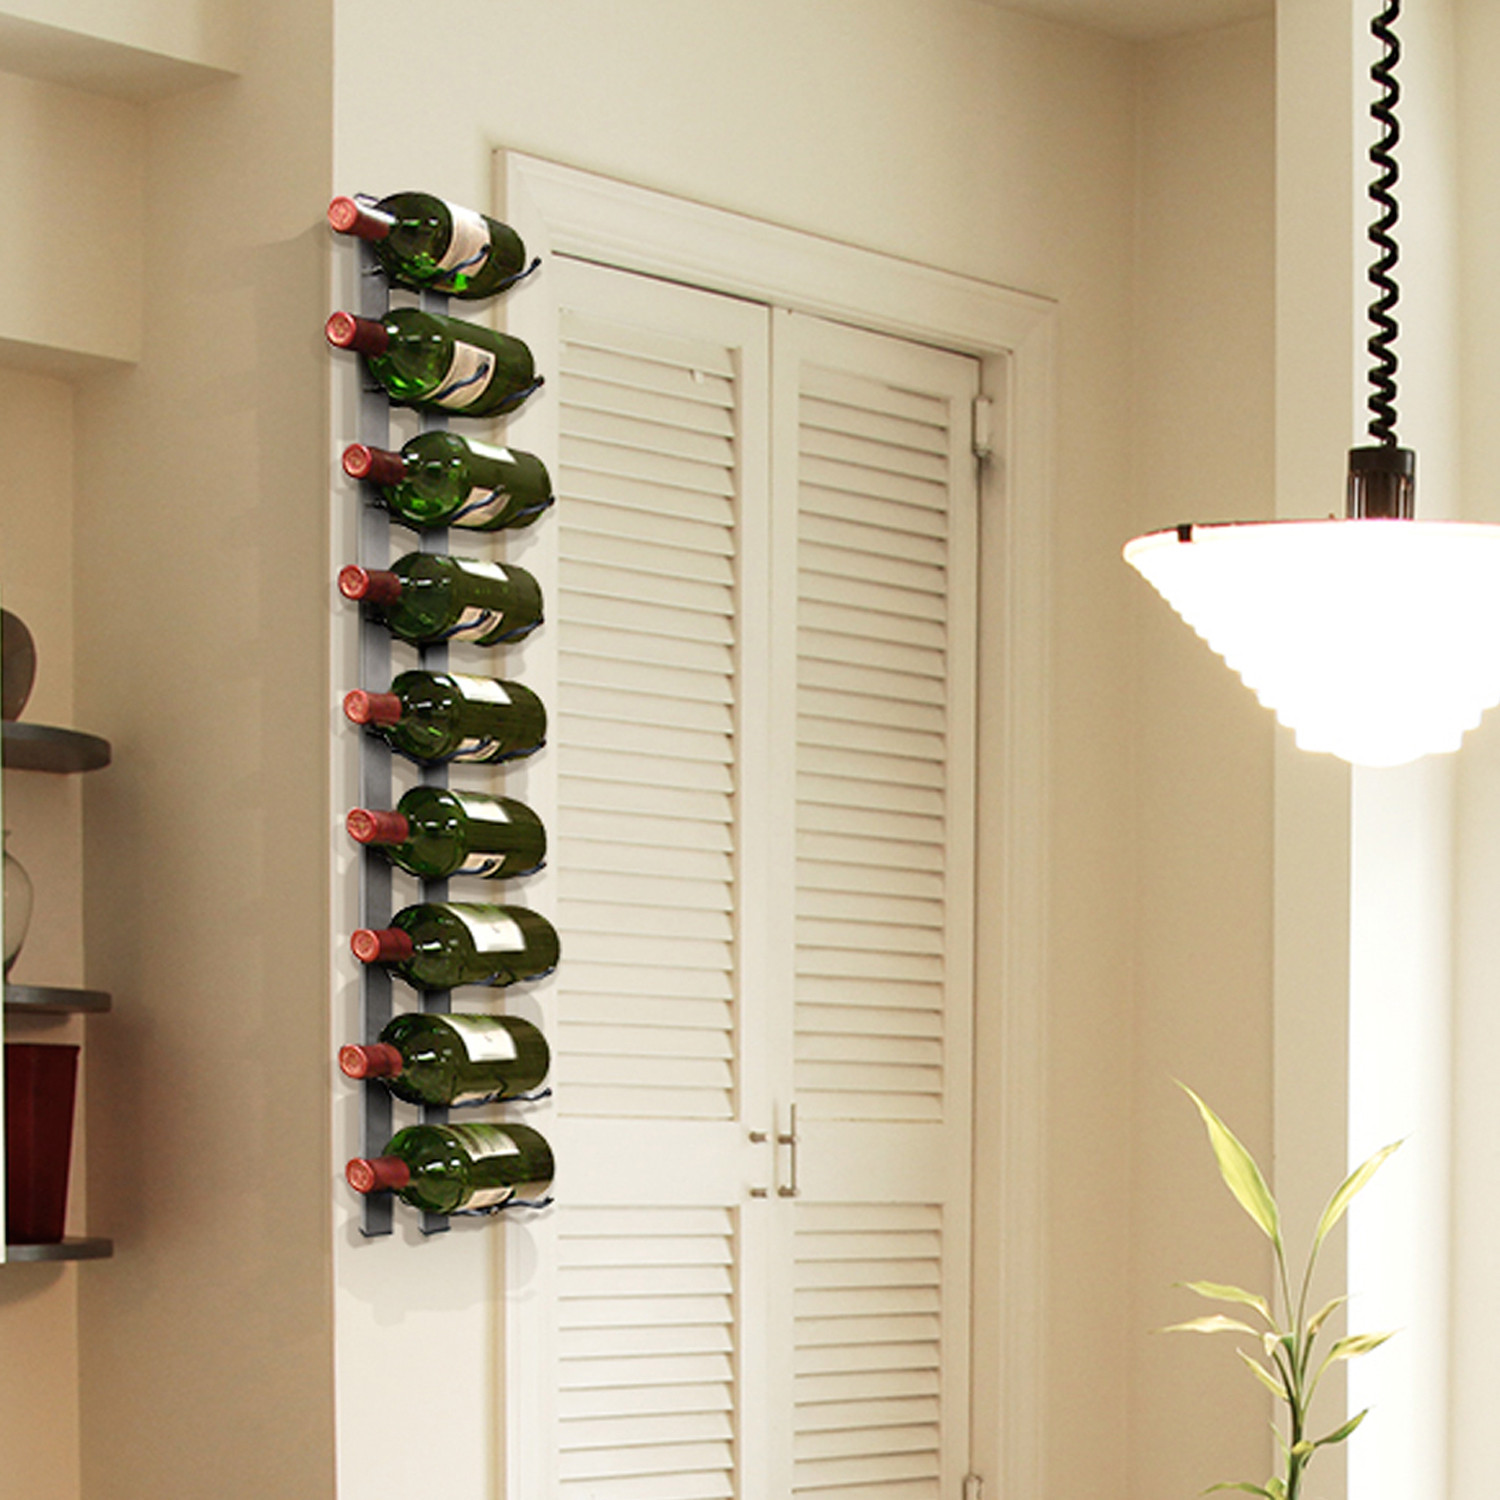 wall mounted wine rack   bottles  epicureanist  touch of modern - wall mounted wine rack   bottles